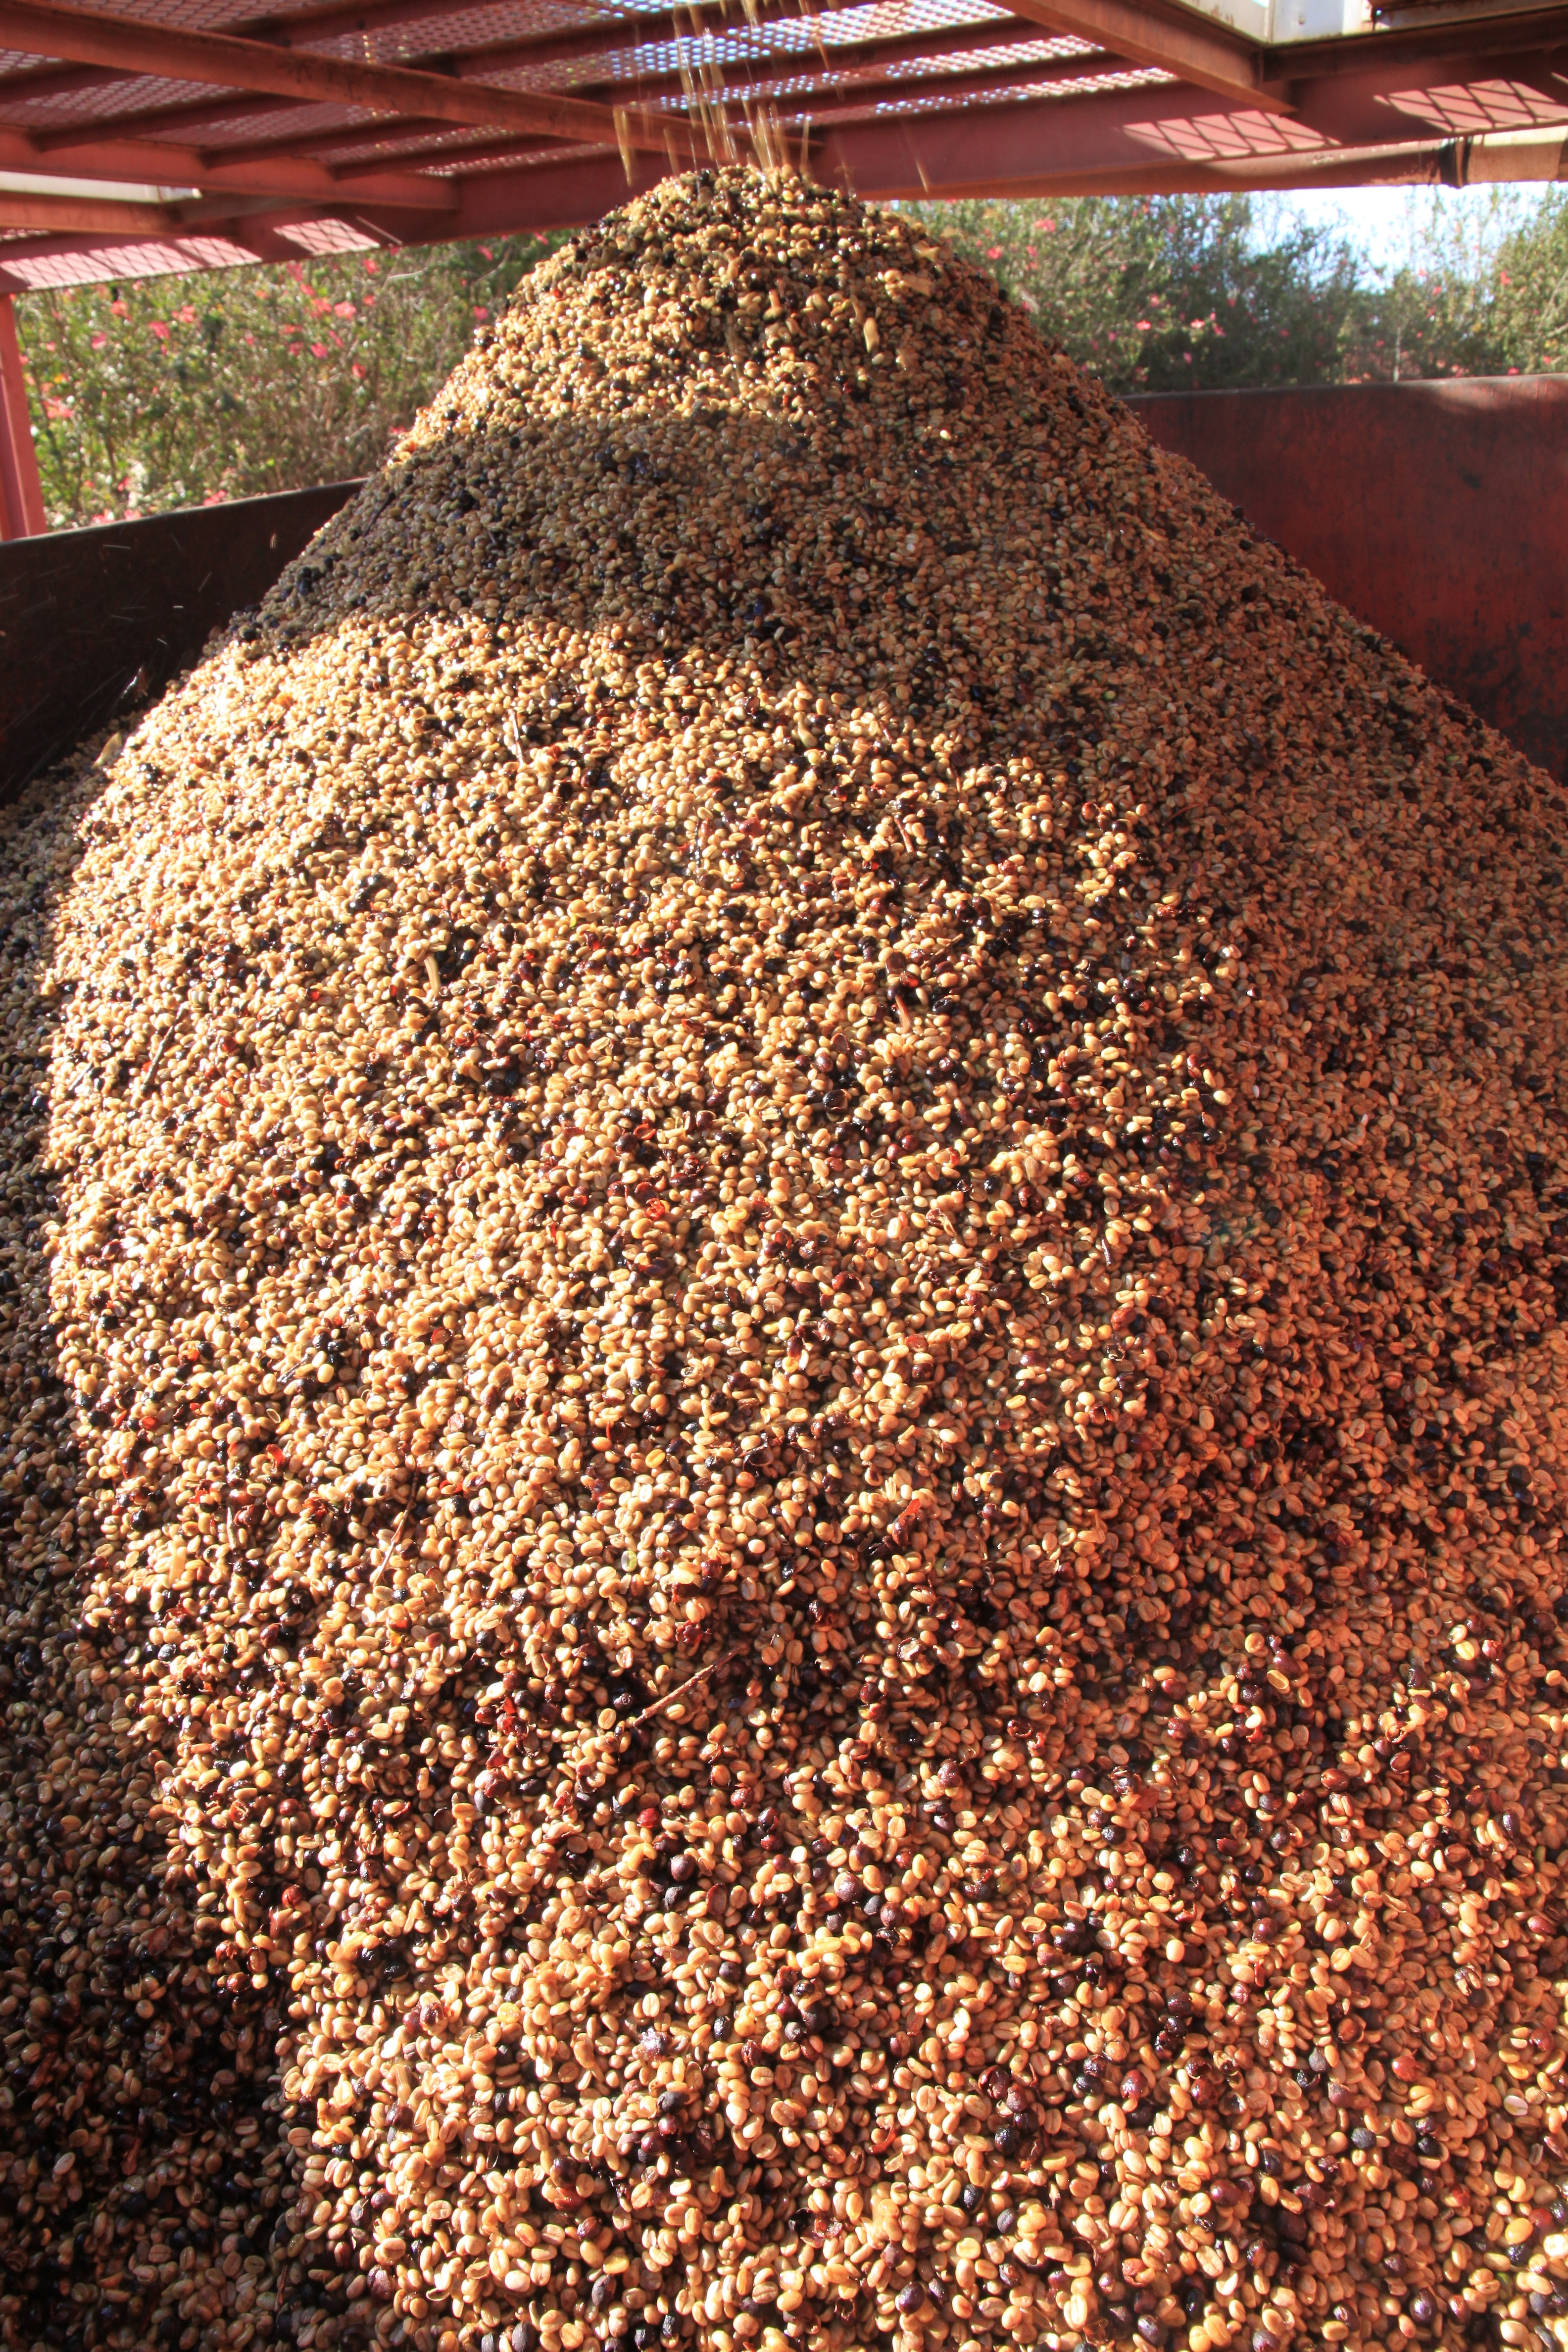 Cherries are pulped before drying